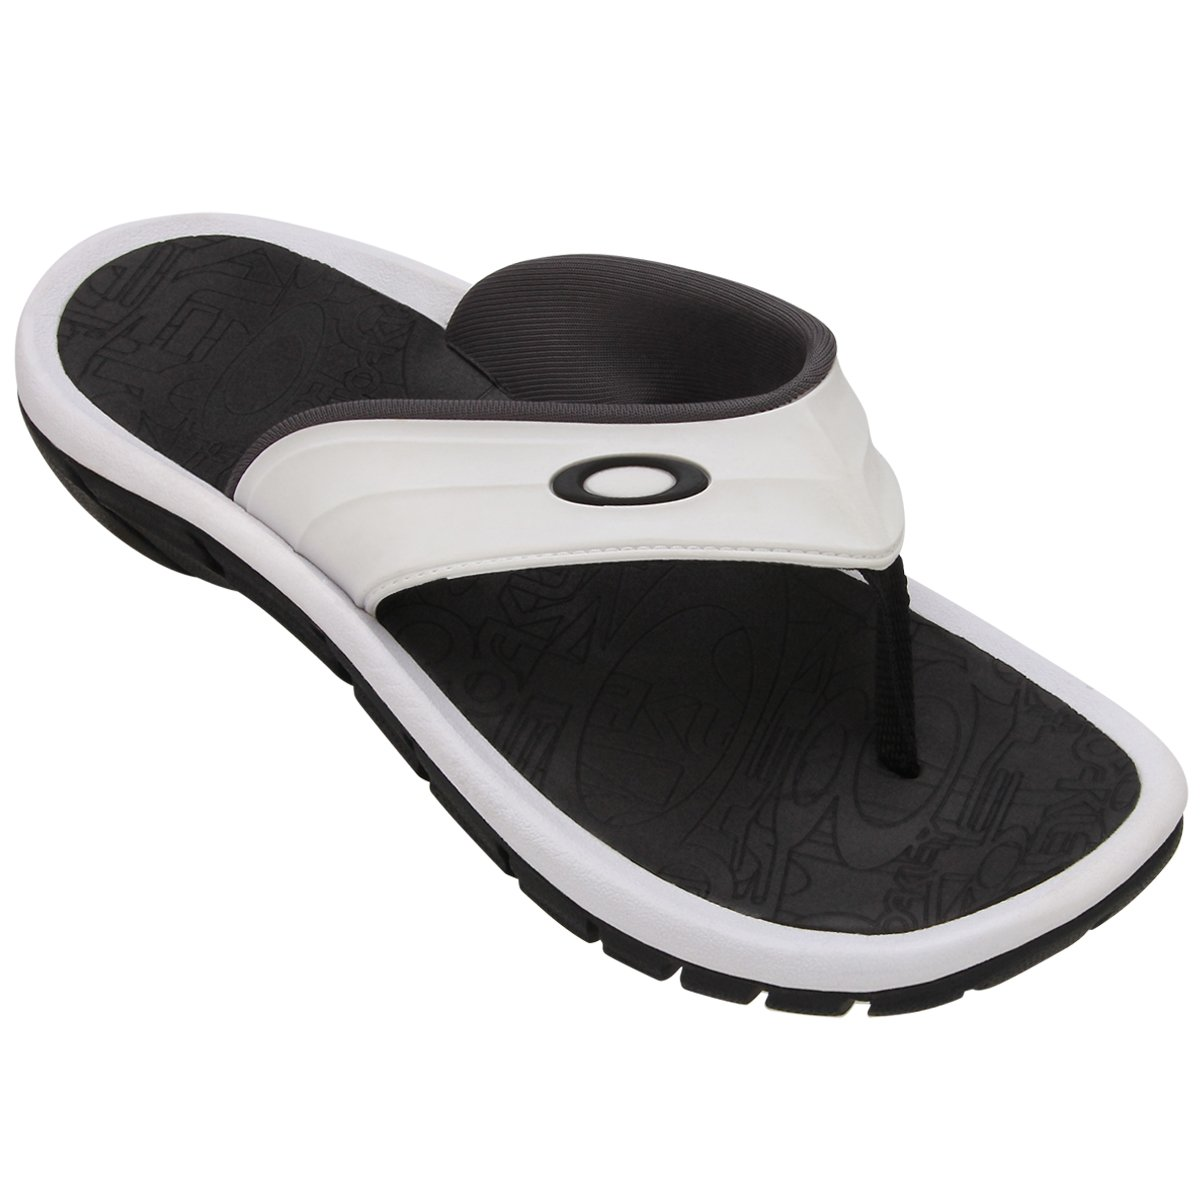 c56d2a238322f Chinelo Oakley Supercoil - Compre Agora   Netshoes